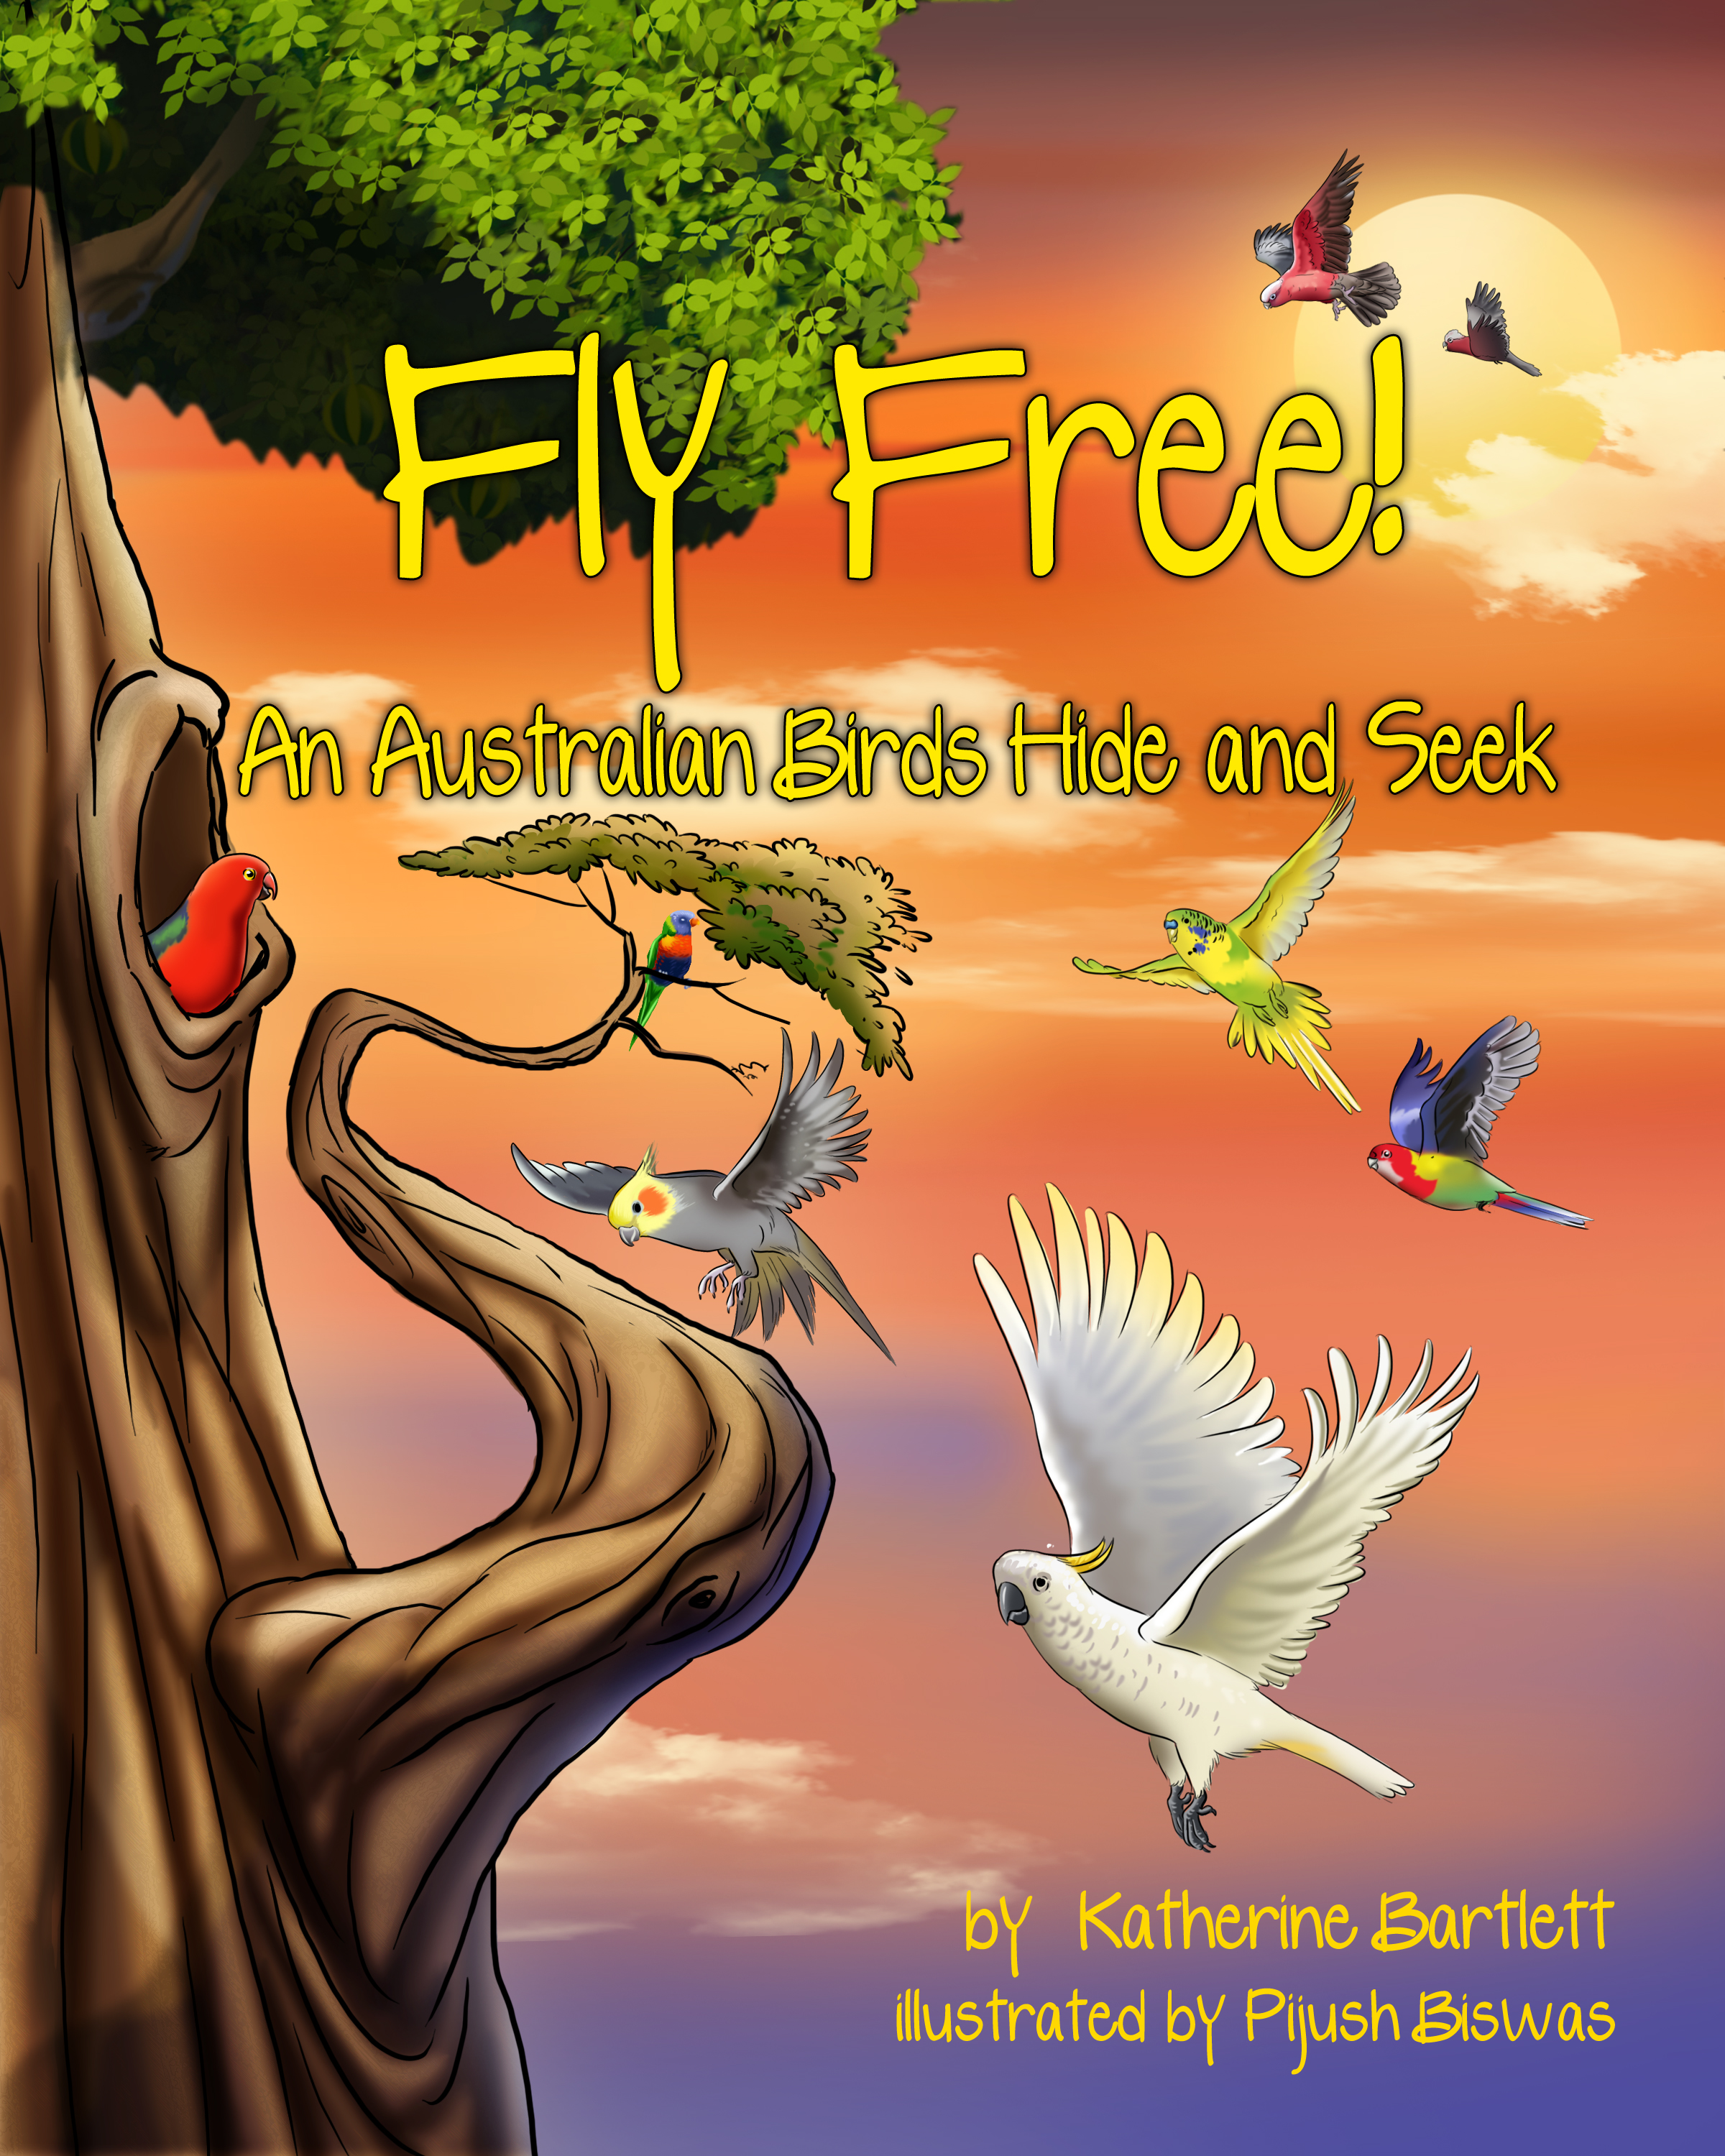 I am published with Animal Tales Press, the publishing company I own.